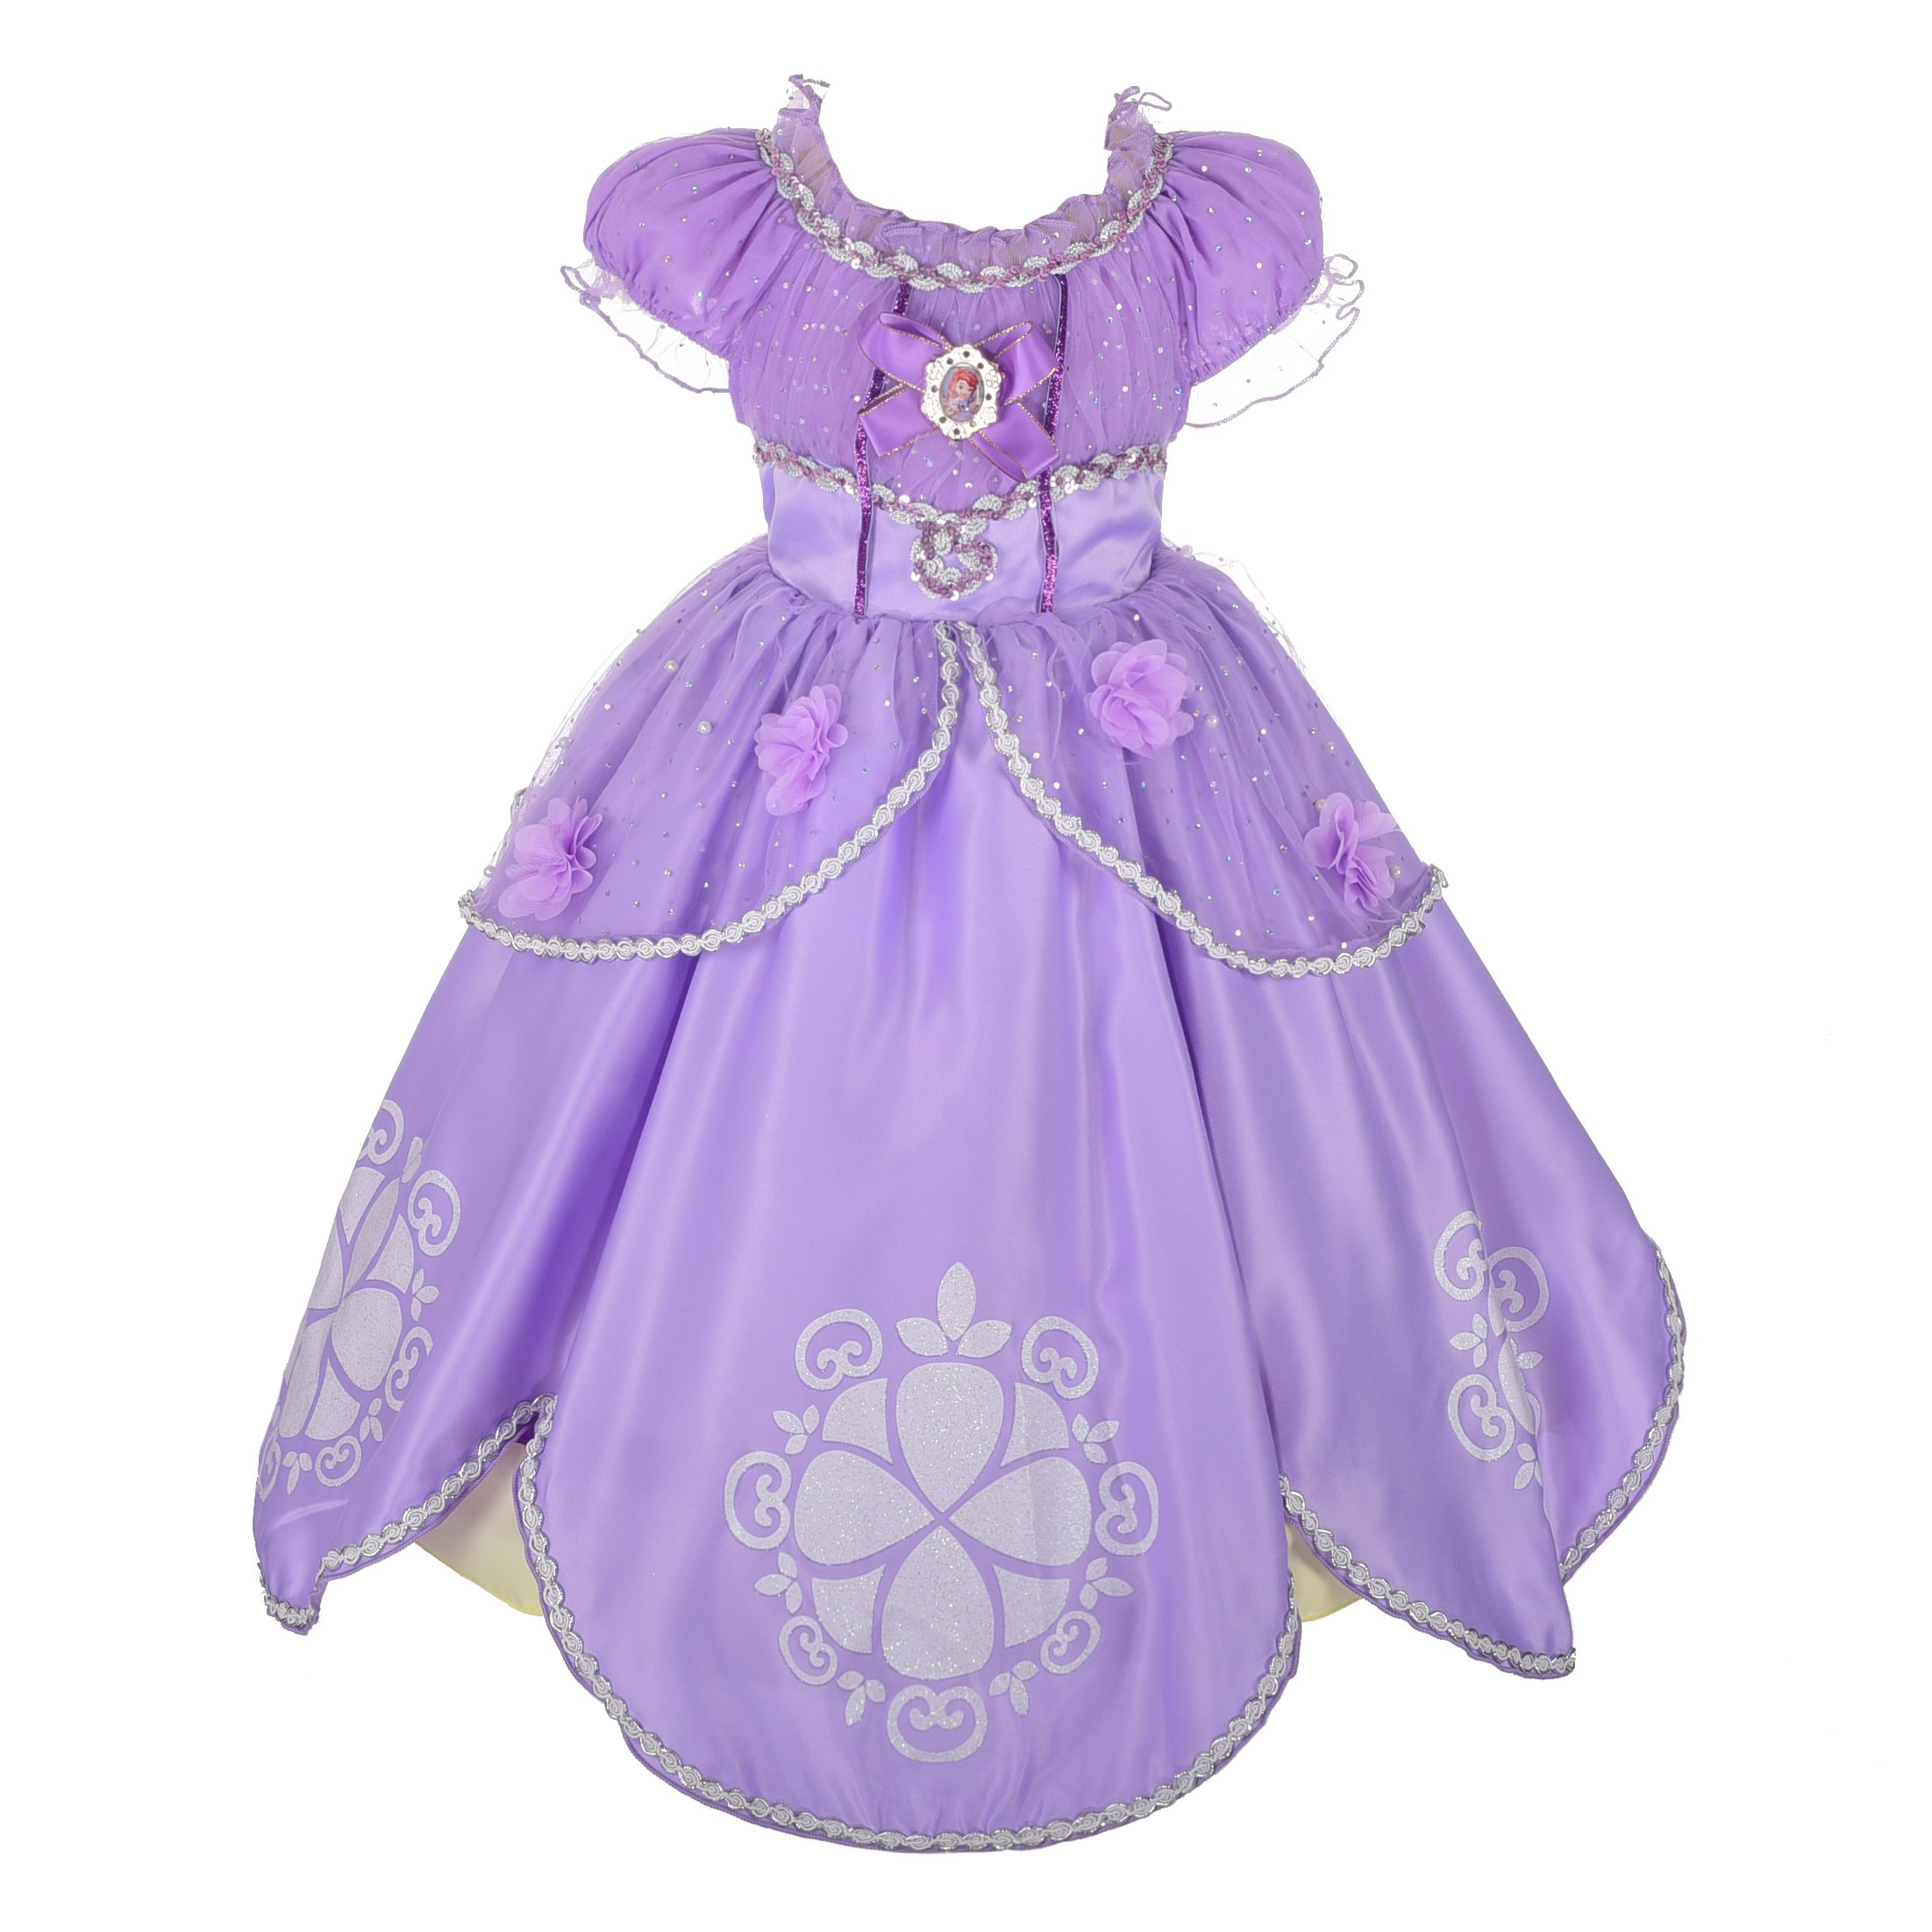 Dressy Daisy Girls' Princess Sofia Dress up Costume Cosplay Fancy Party Long Dress Size 3T/4T